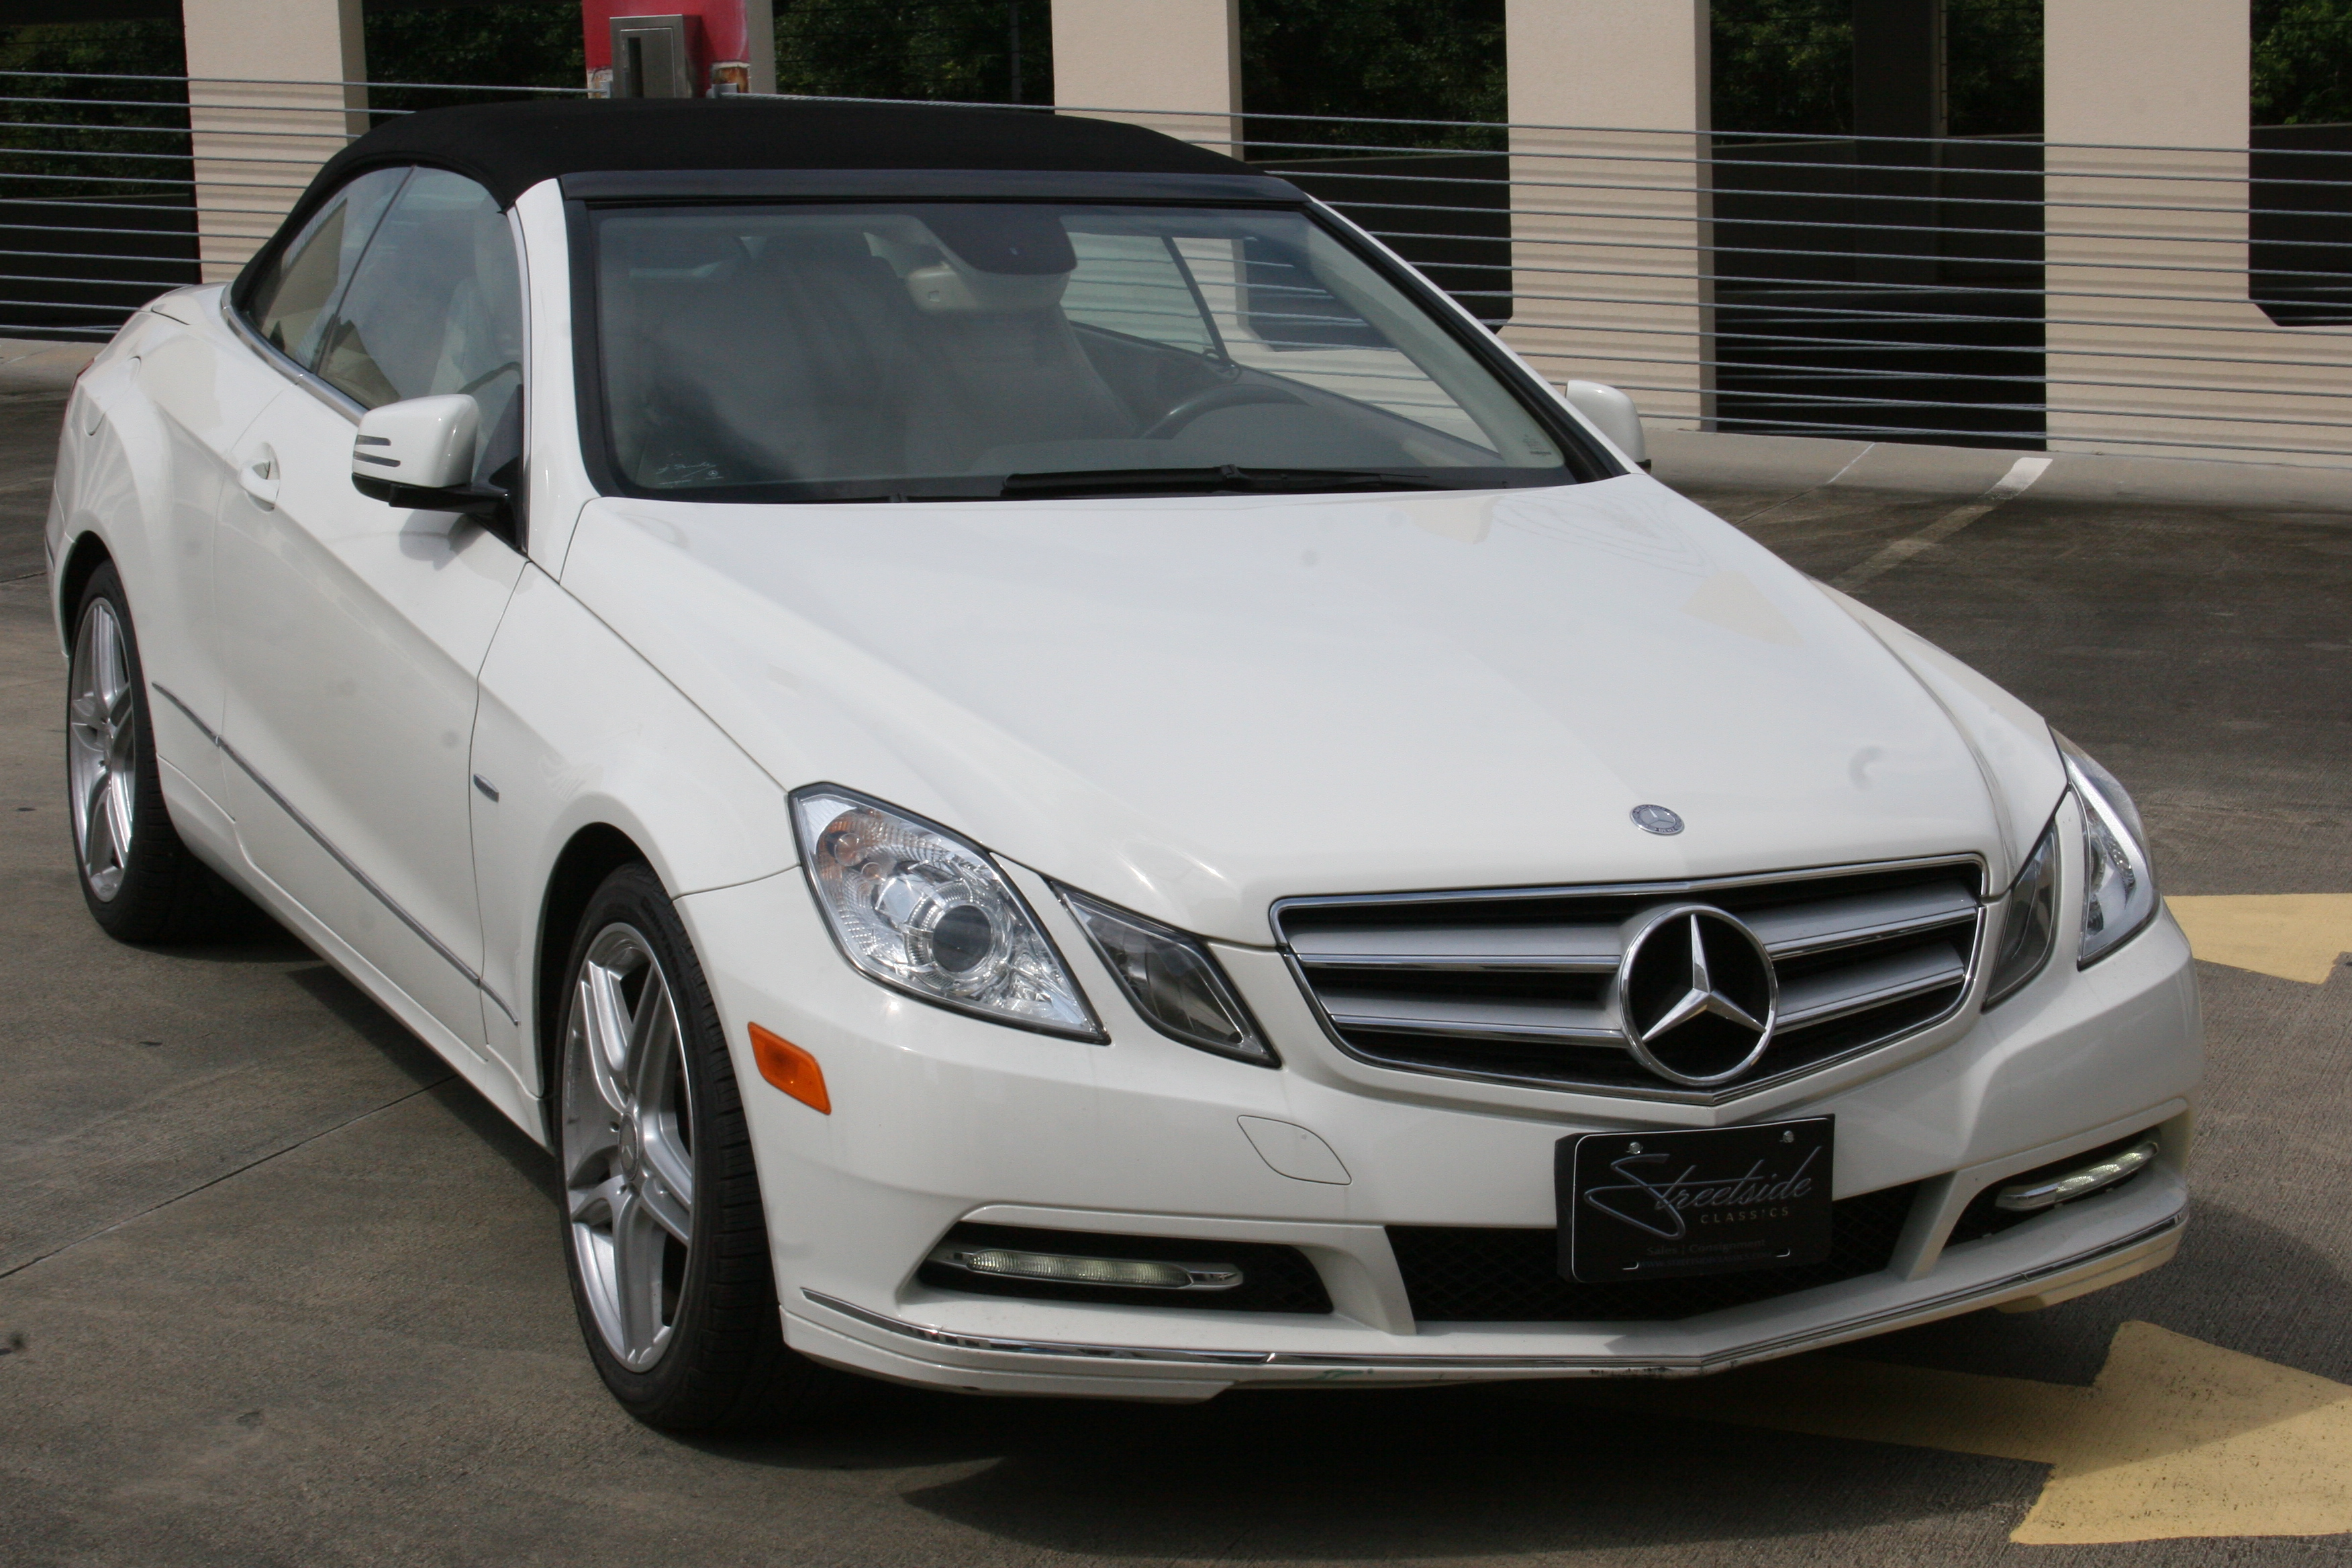 mercedes sport are of equipped tires automotive trim is a blog than suspension benz stiffer rnr profile luxury versions with or review lower this there aforementioned the two and